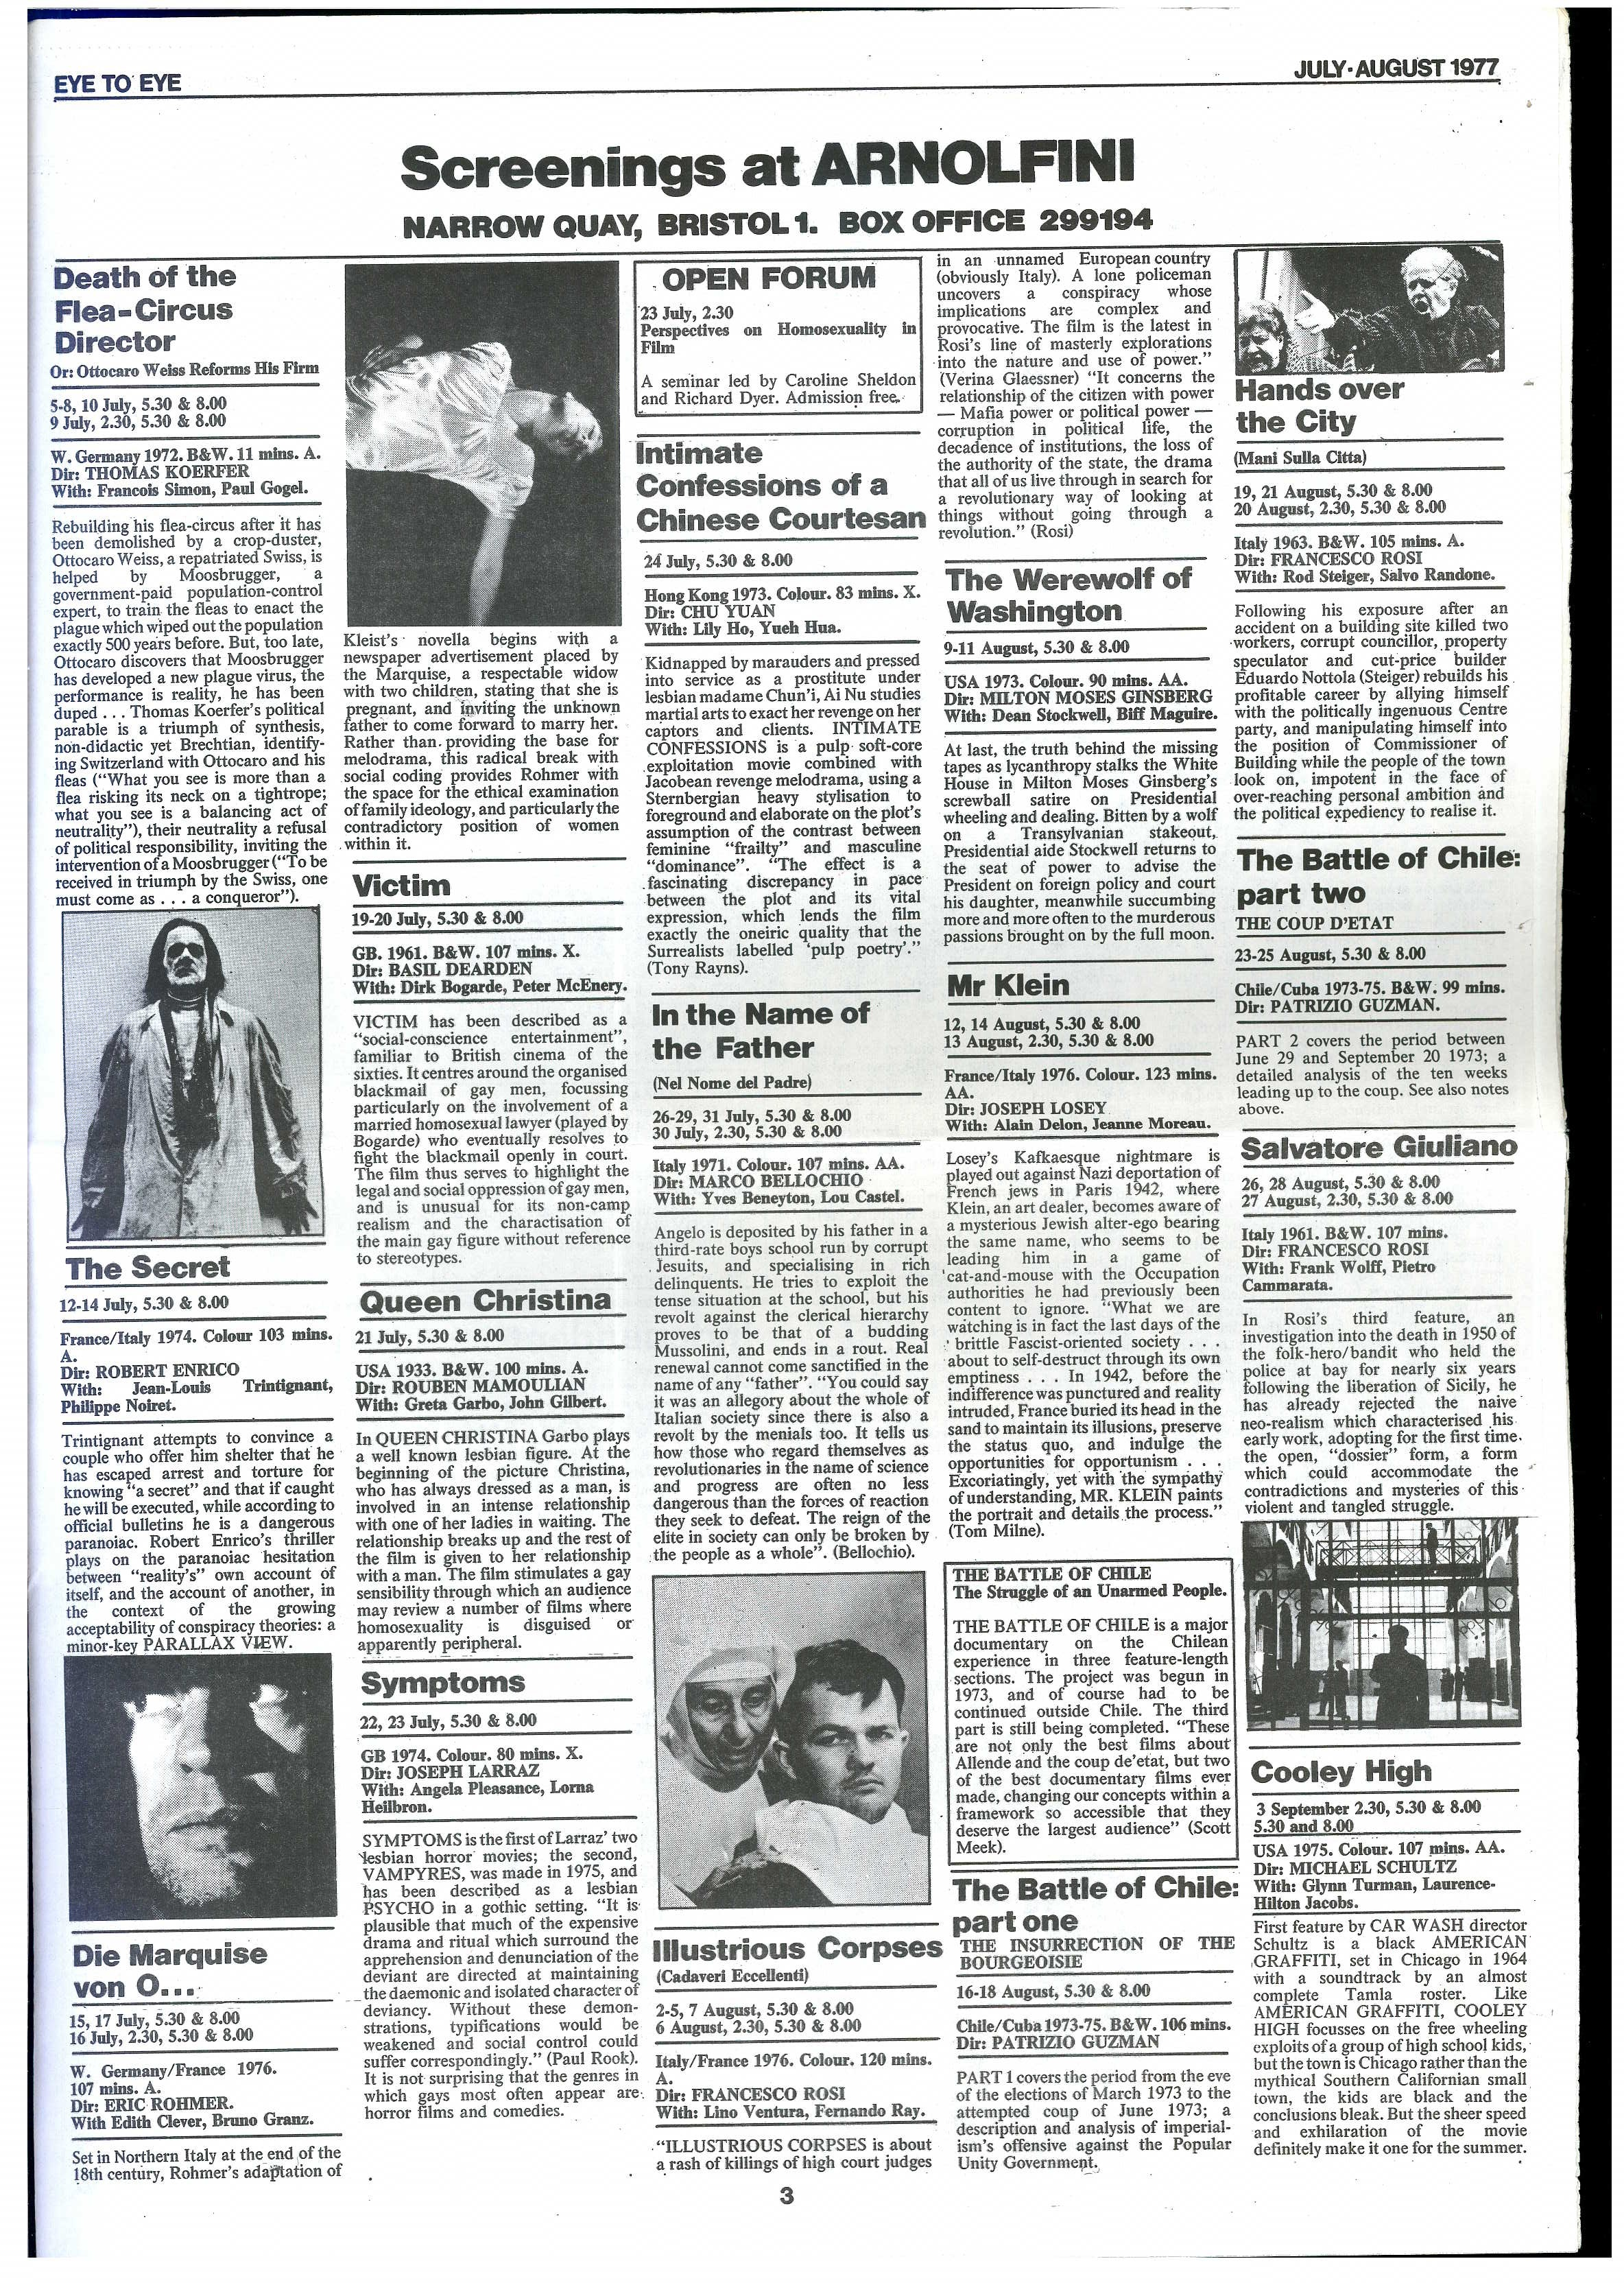 Newspaper page from Eye to Eye, July - August 1979, showing film screenings at Arnolfini. Films included Dirk Bogarde in Victim (1961) and Greta Garbo in Queen Christina (1933).